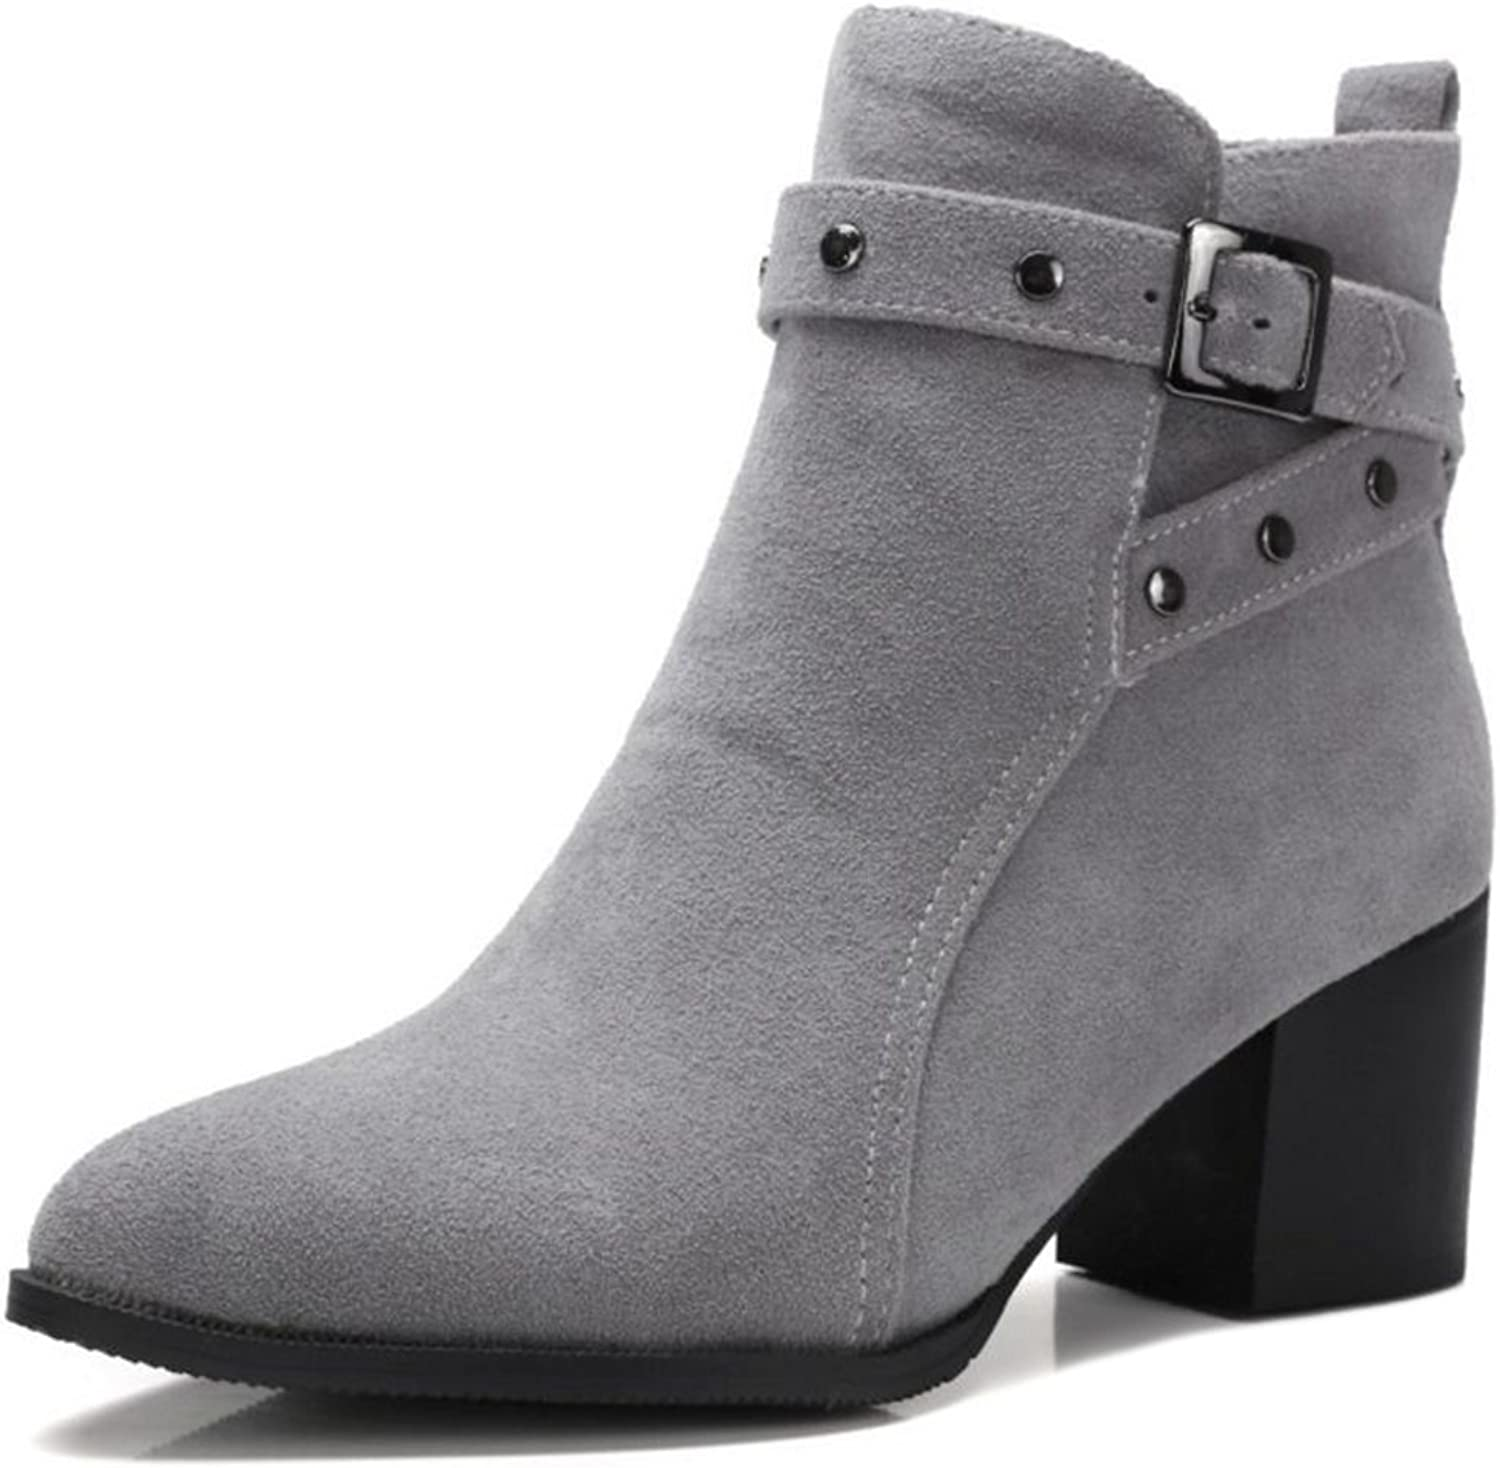 Smilice Large Size & Small Size Boots Women Fashion Pointed Toe Ankle Booties